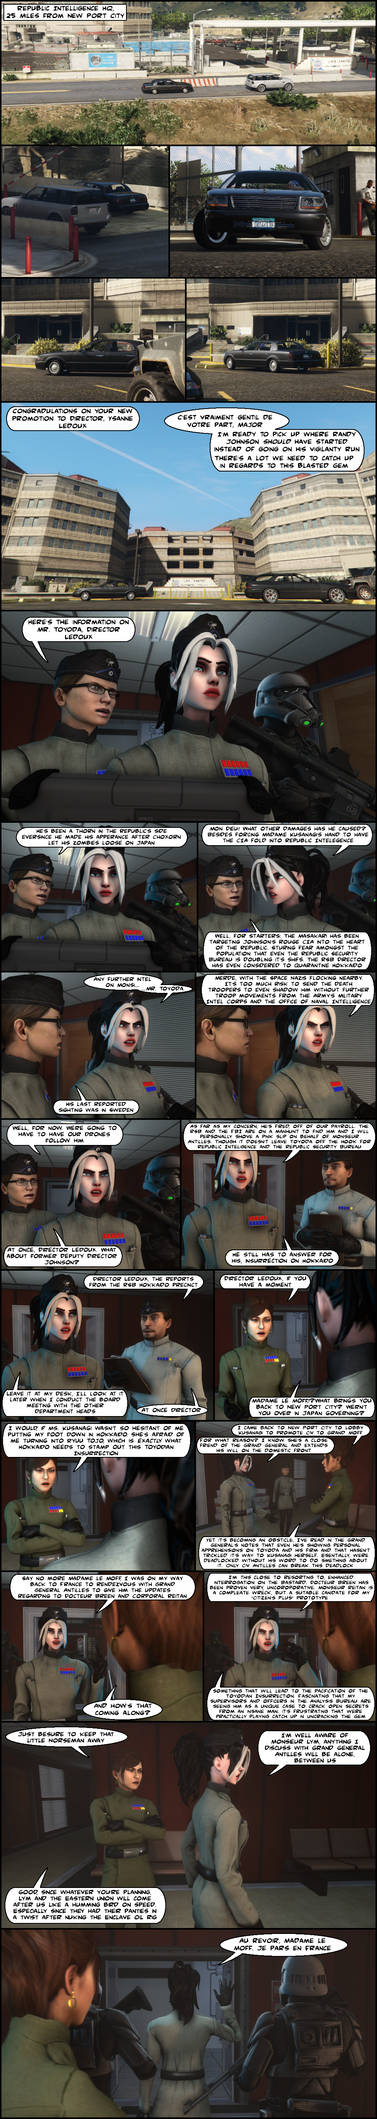 GenMarshall DYOS PwP Comic #1: Enter Ysanne Ledoux by GenMarshall